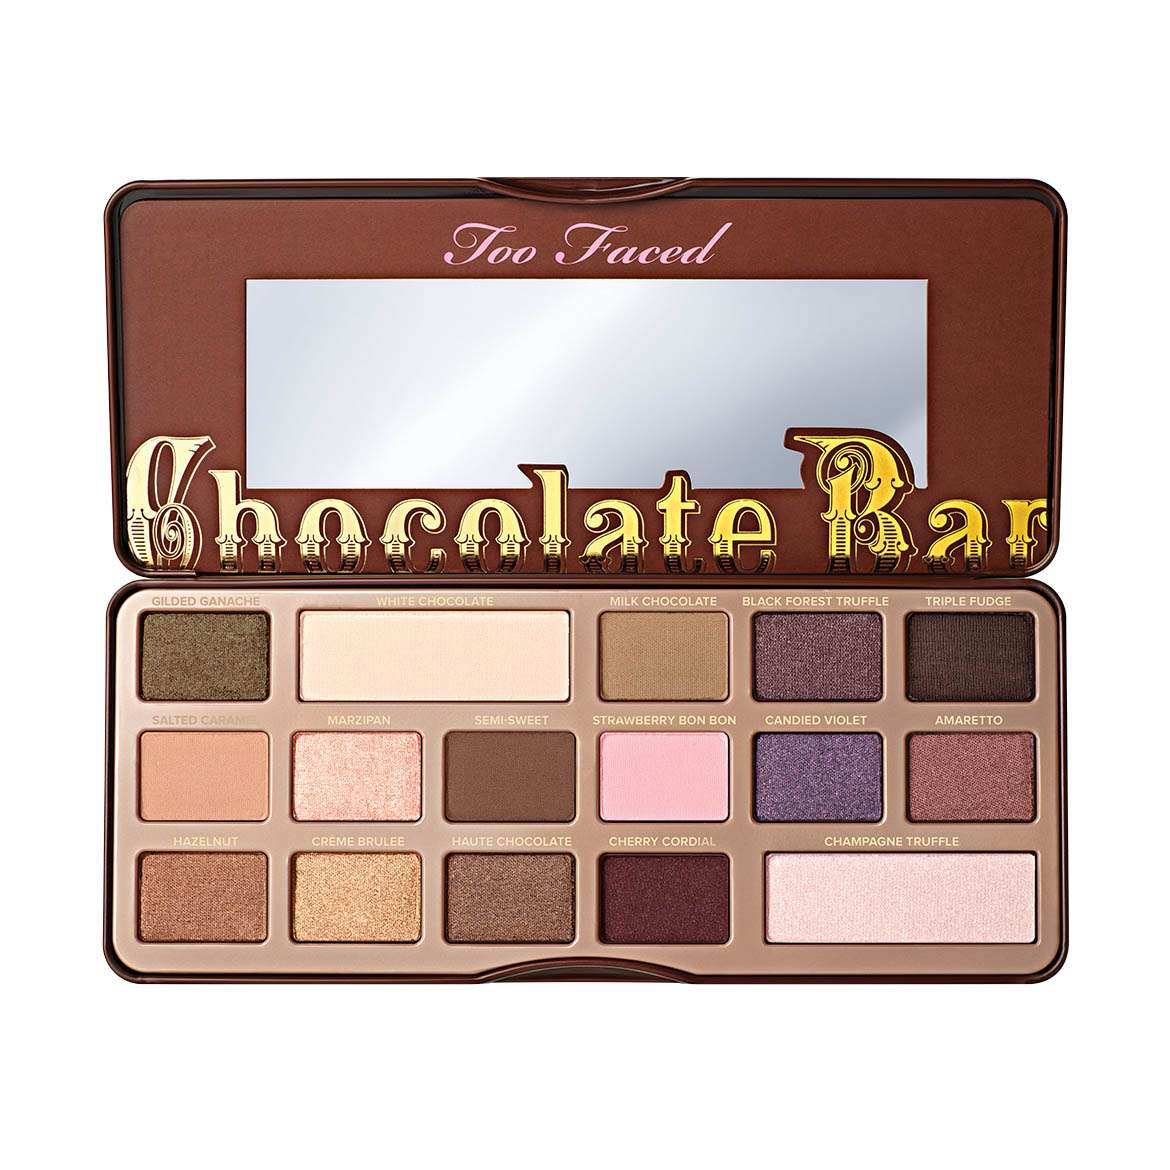 mis productos favoritos de Too faced - chocolate bar